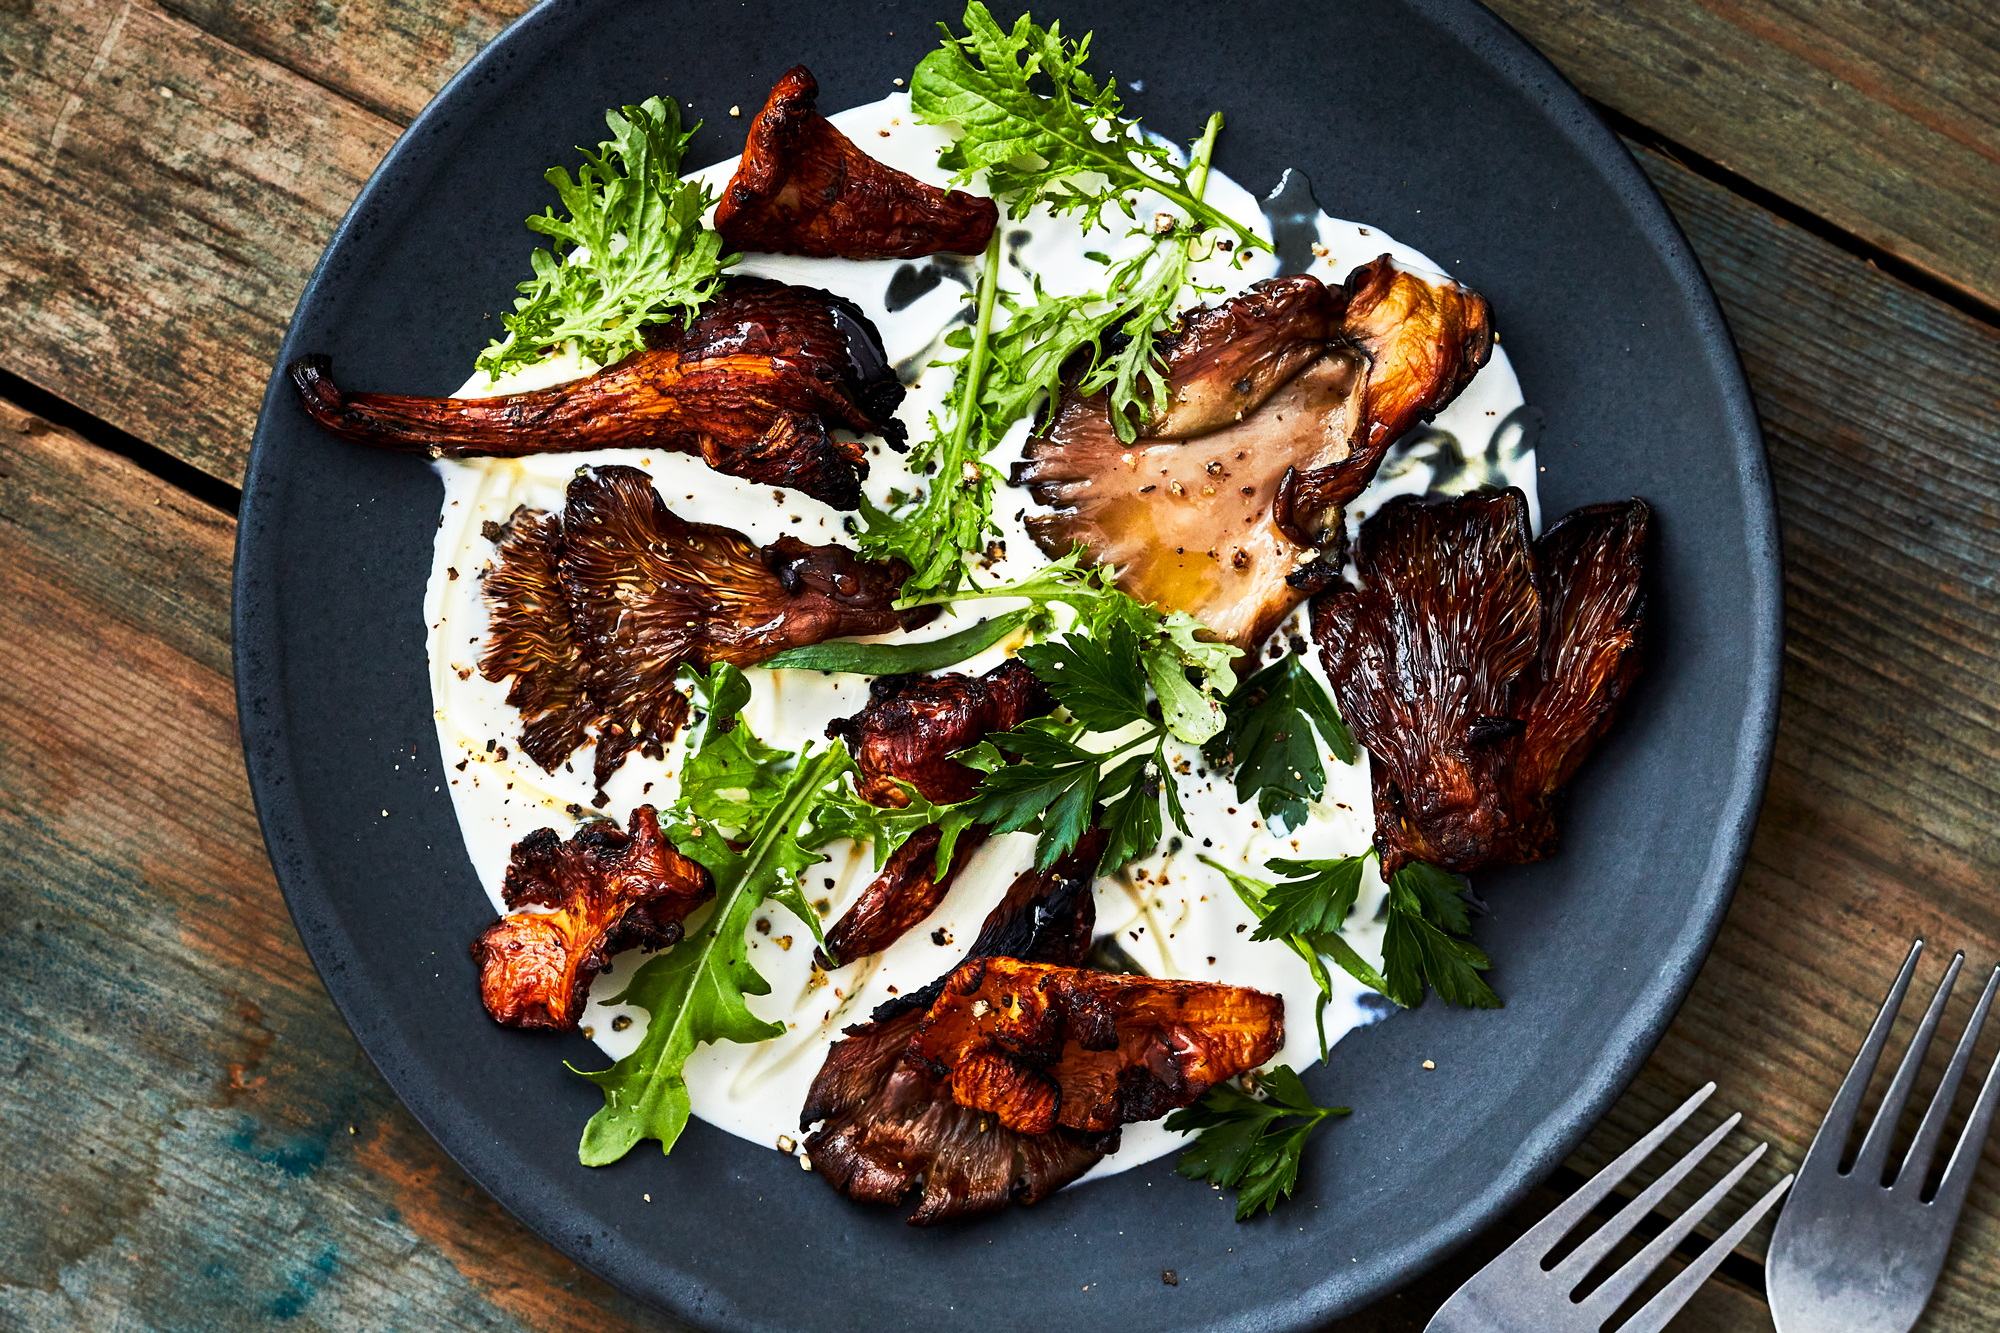 Grilled Mushrooms with smoked creme fraiche